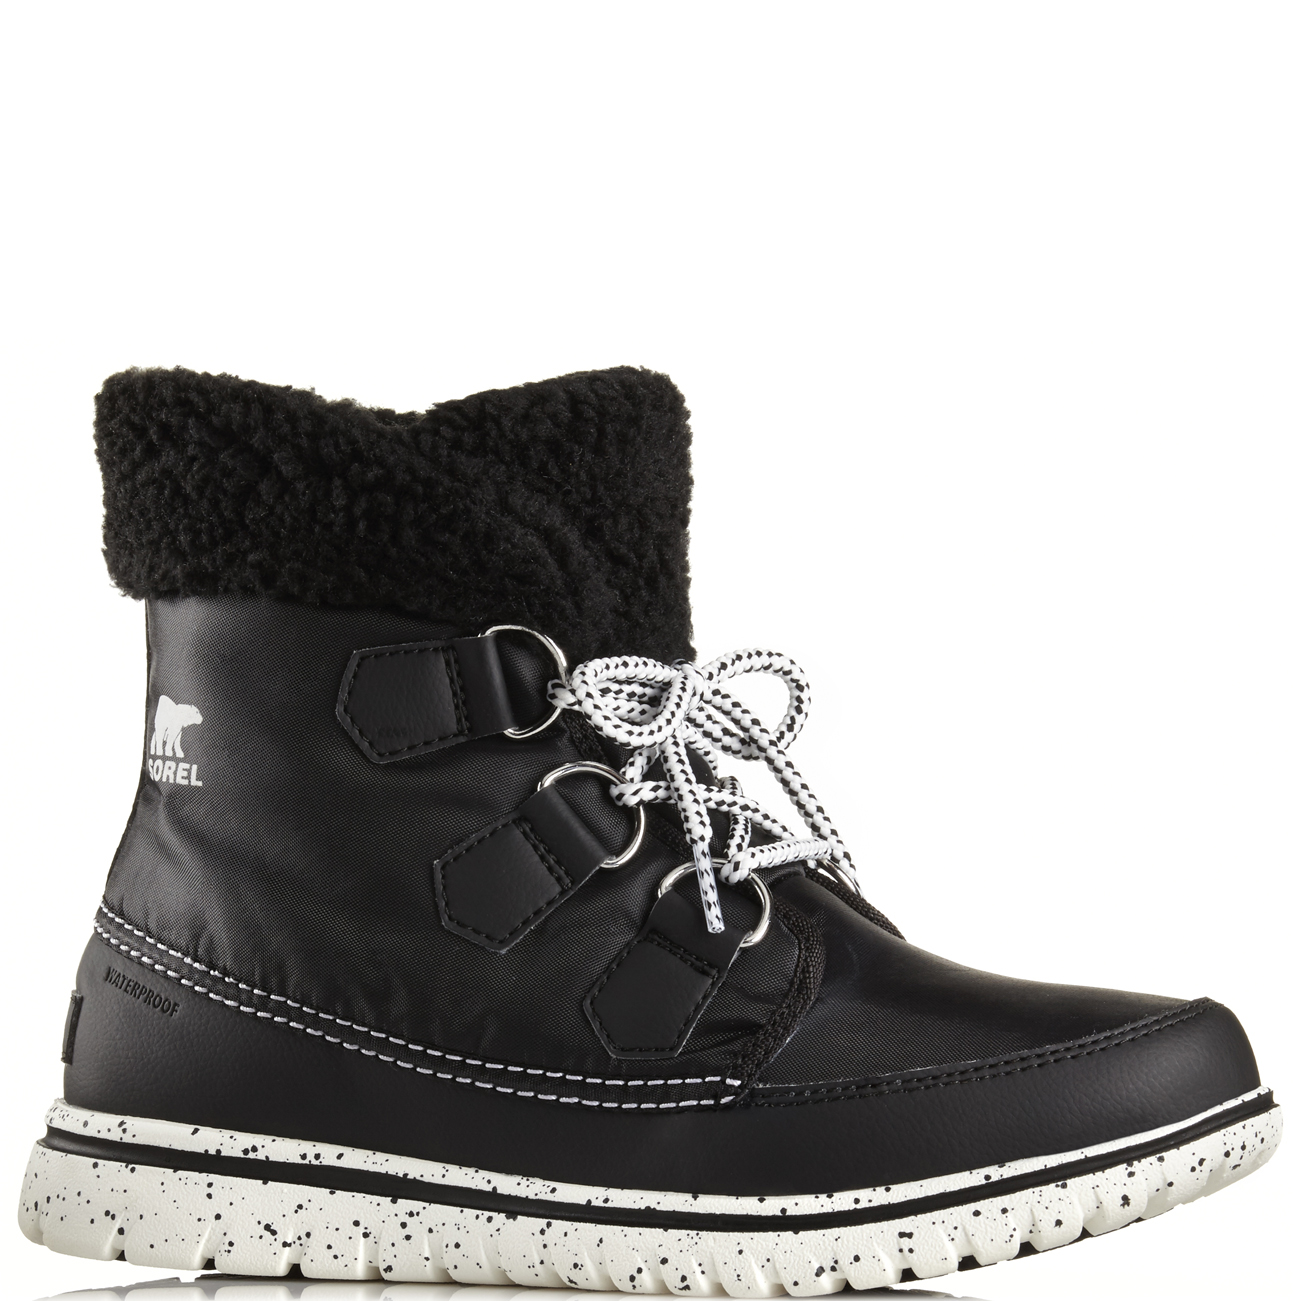 Womens Snow Boots Shoe Carnival